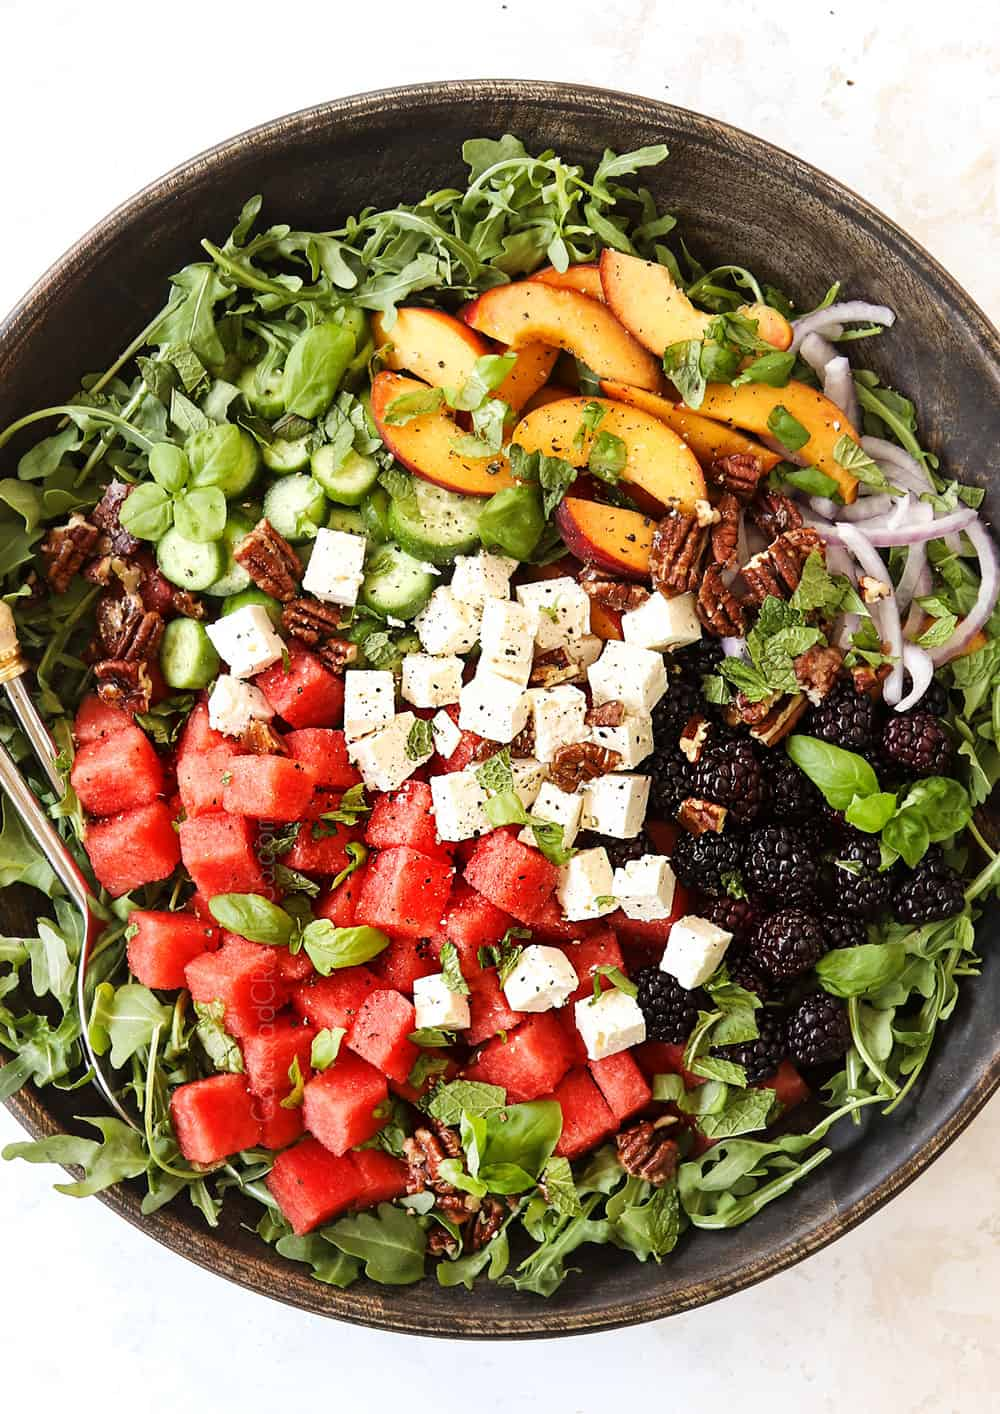 showing how to make watermelon salad recipe by adding watermelon, feta, mint, arugula, cucumbers and berries to a large bowl